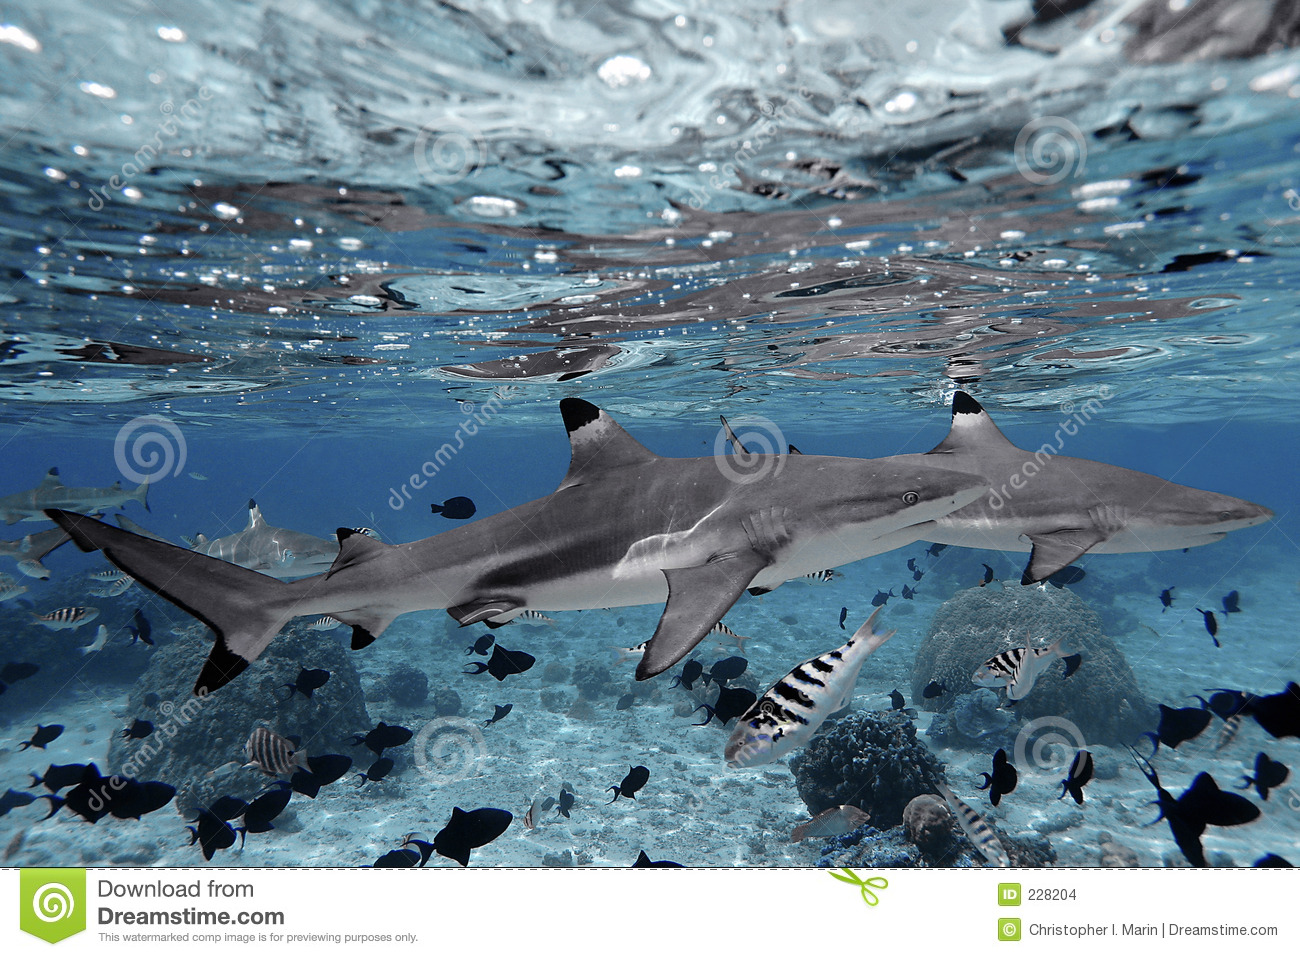 Sharks swimming in crystal clear water